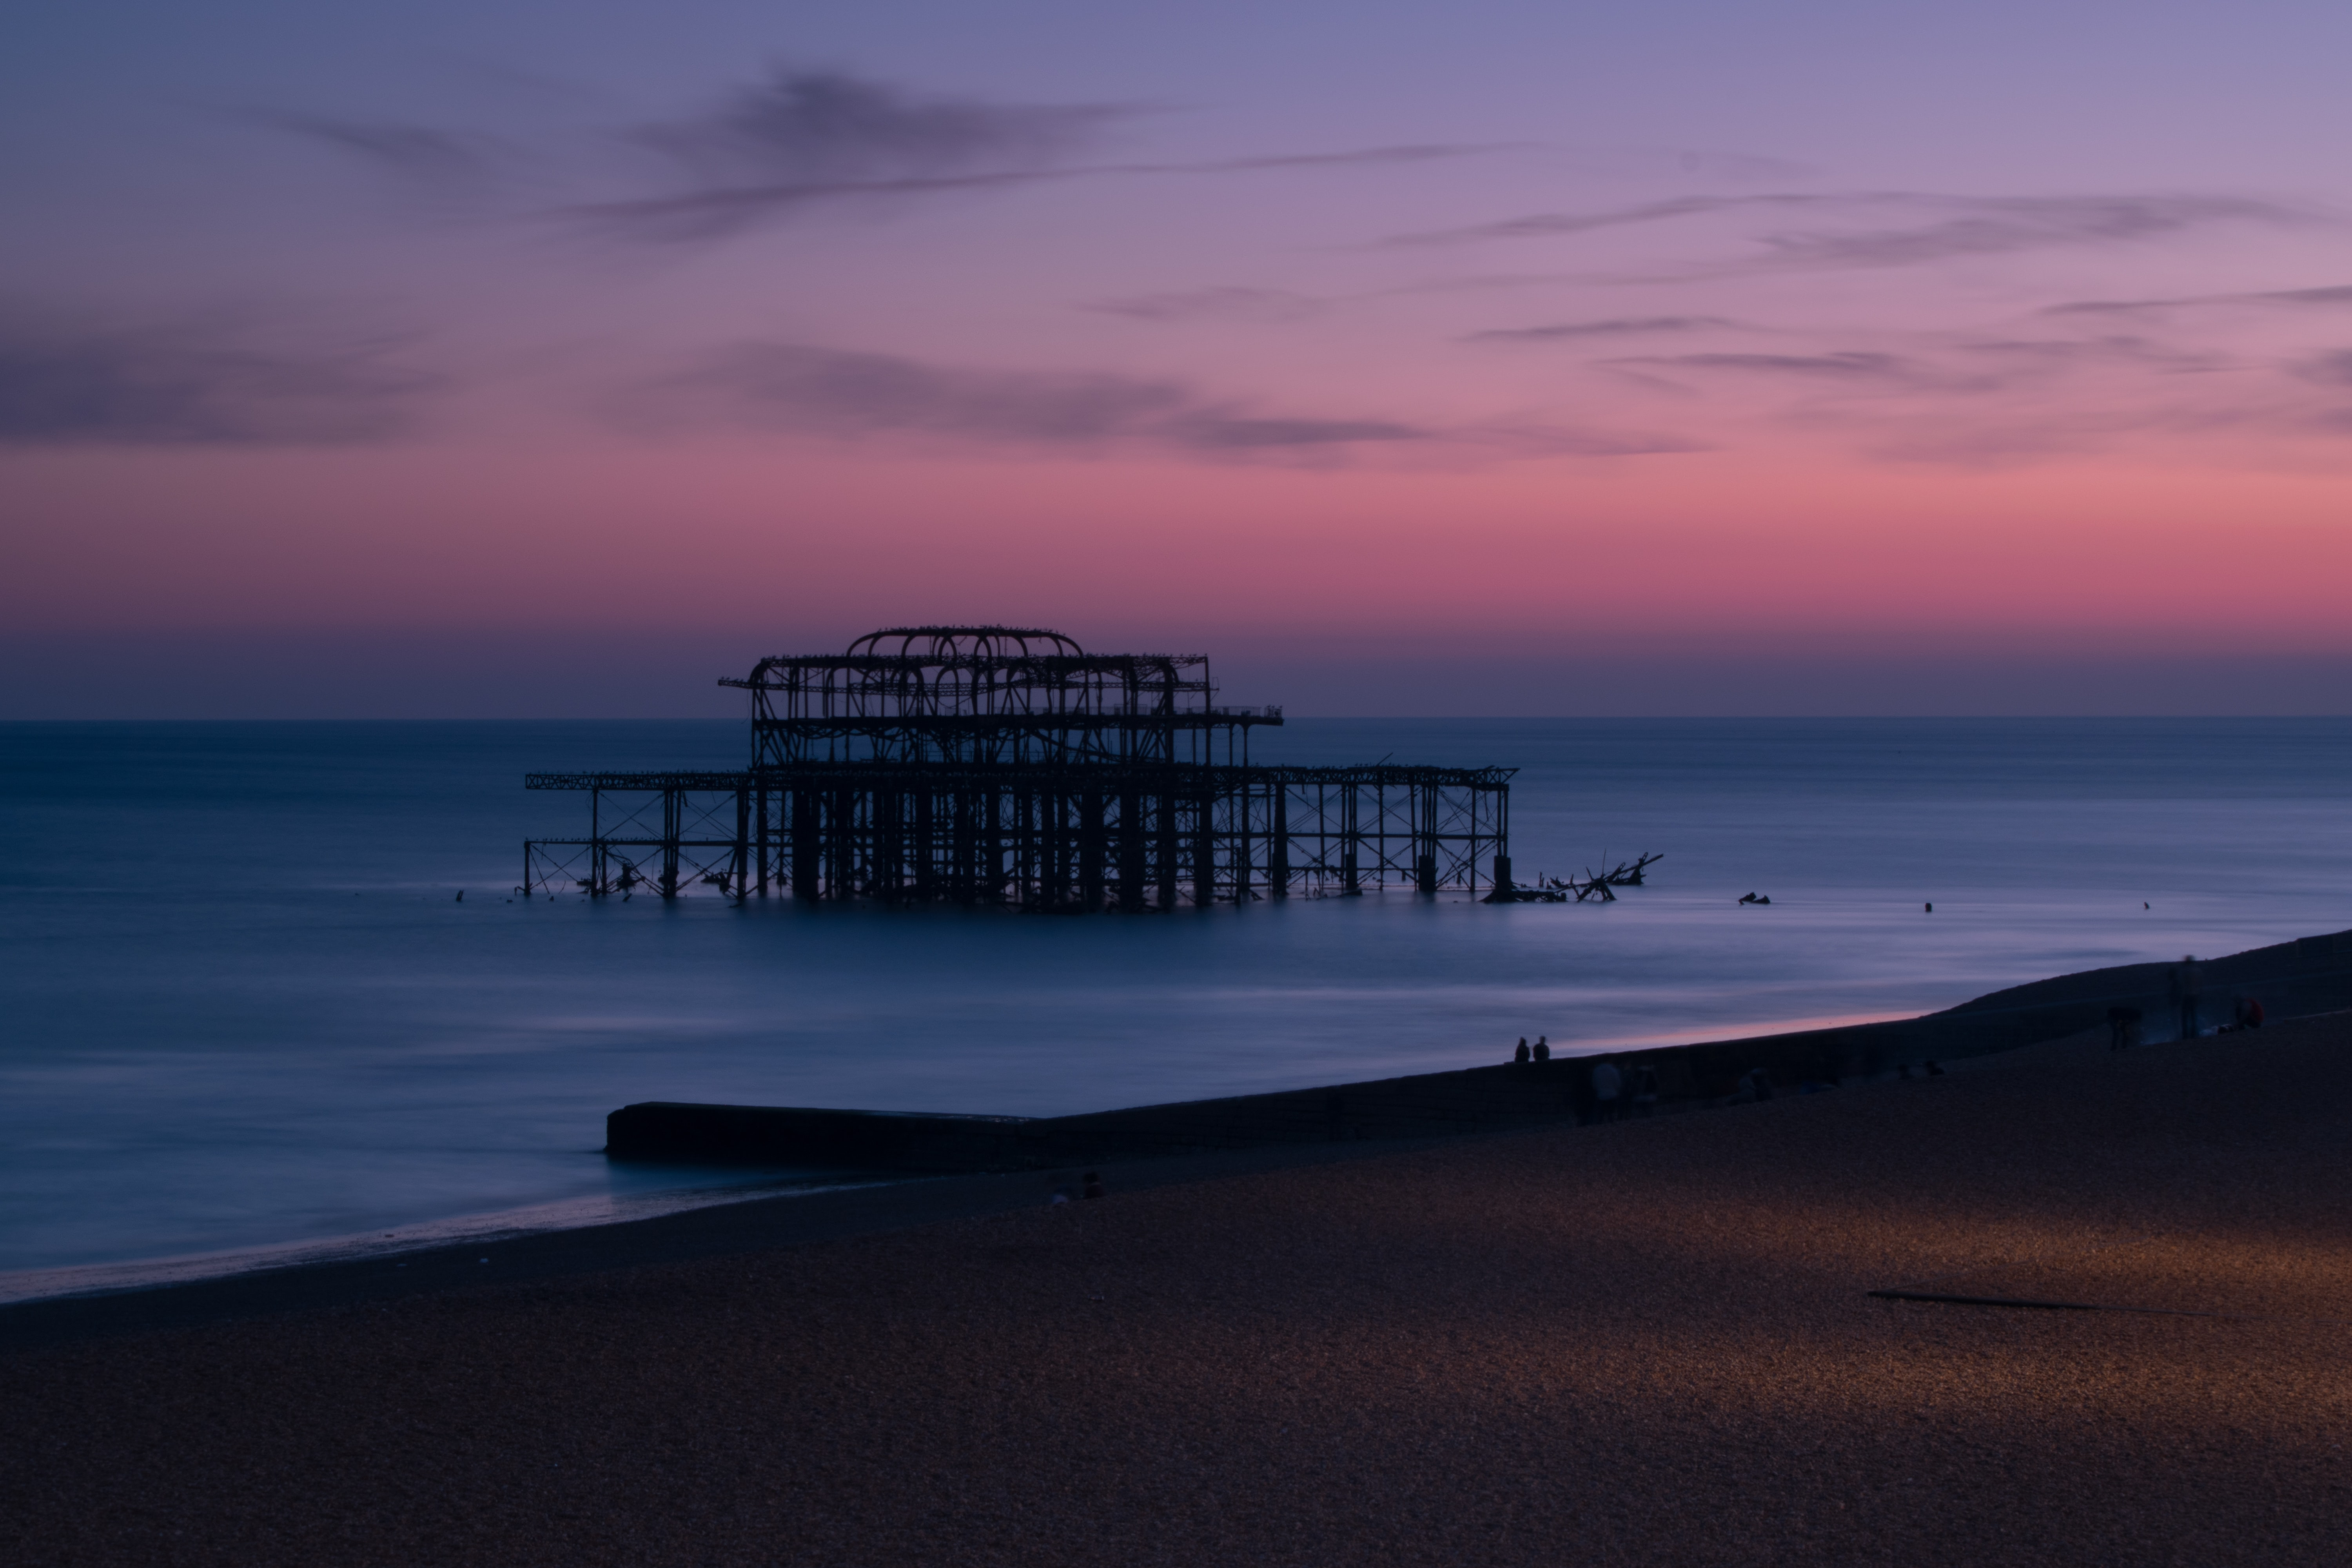 A purple sunset at a pier on a Brighton seafront